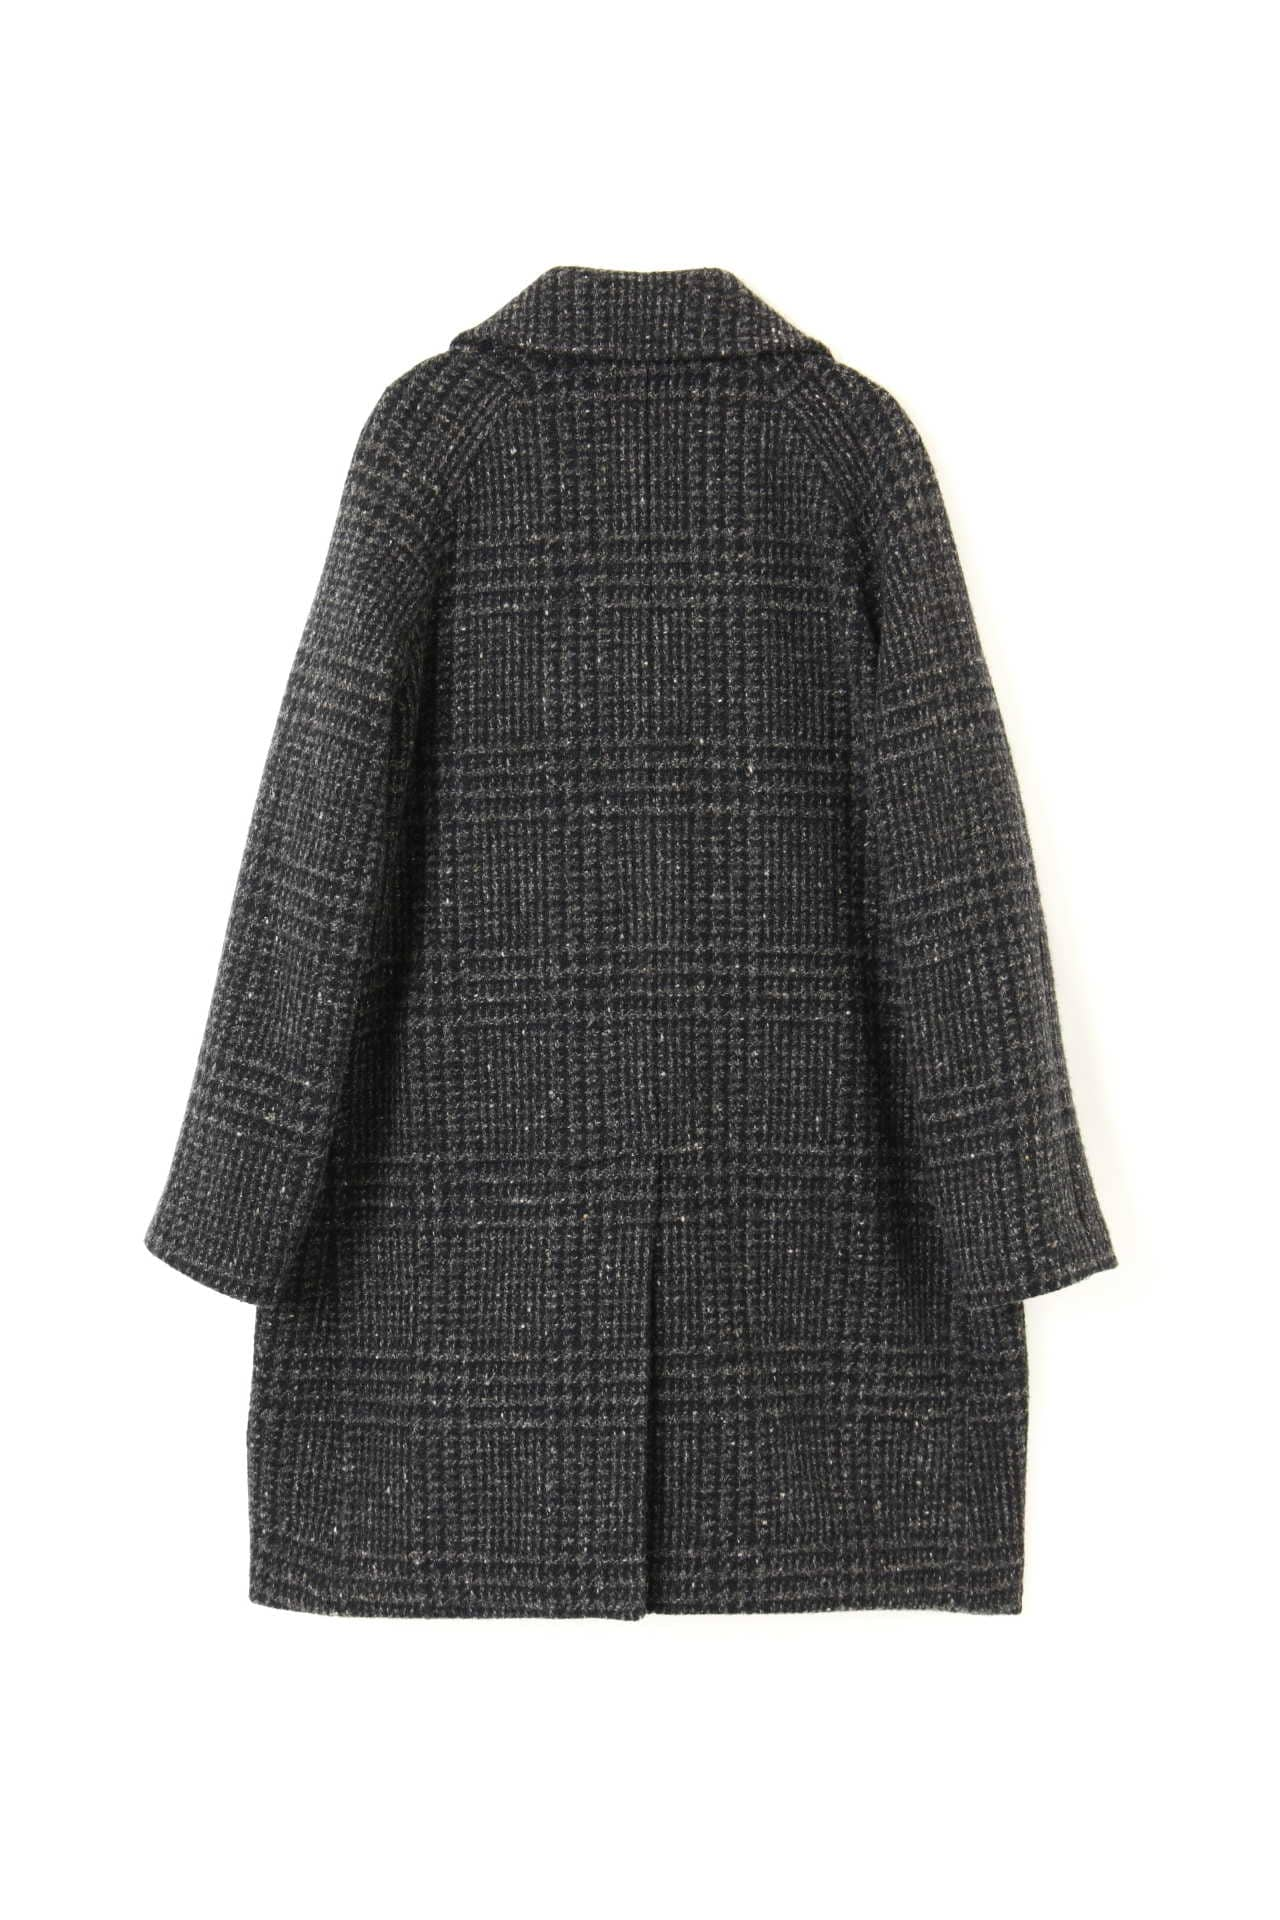 LARGE PRINCE OF WALES WOOL COATING2